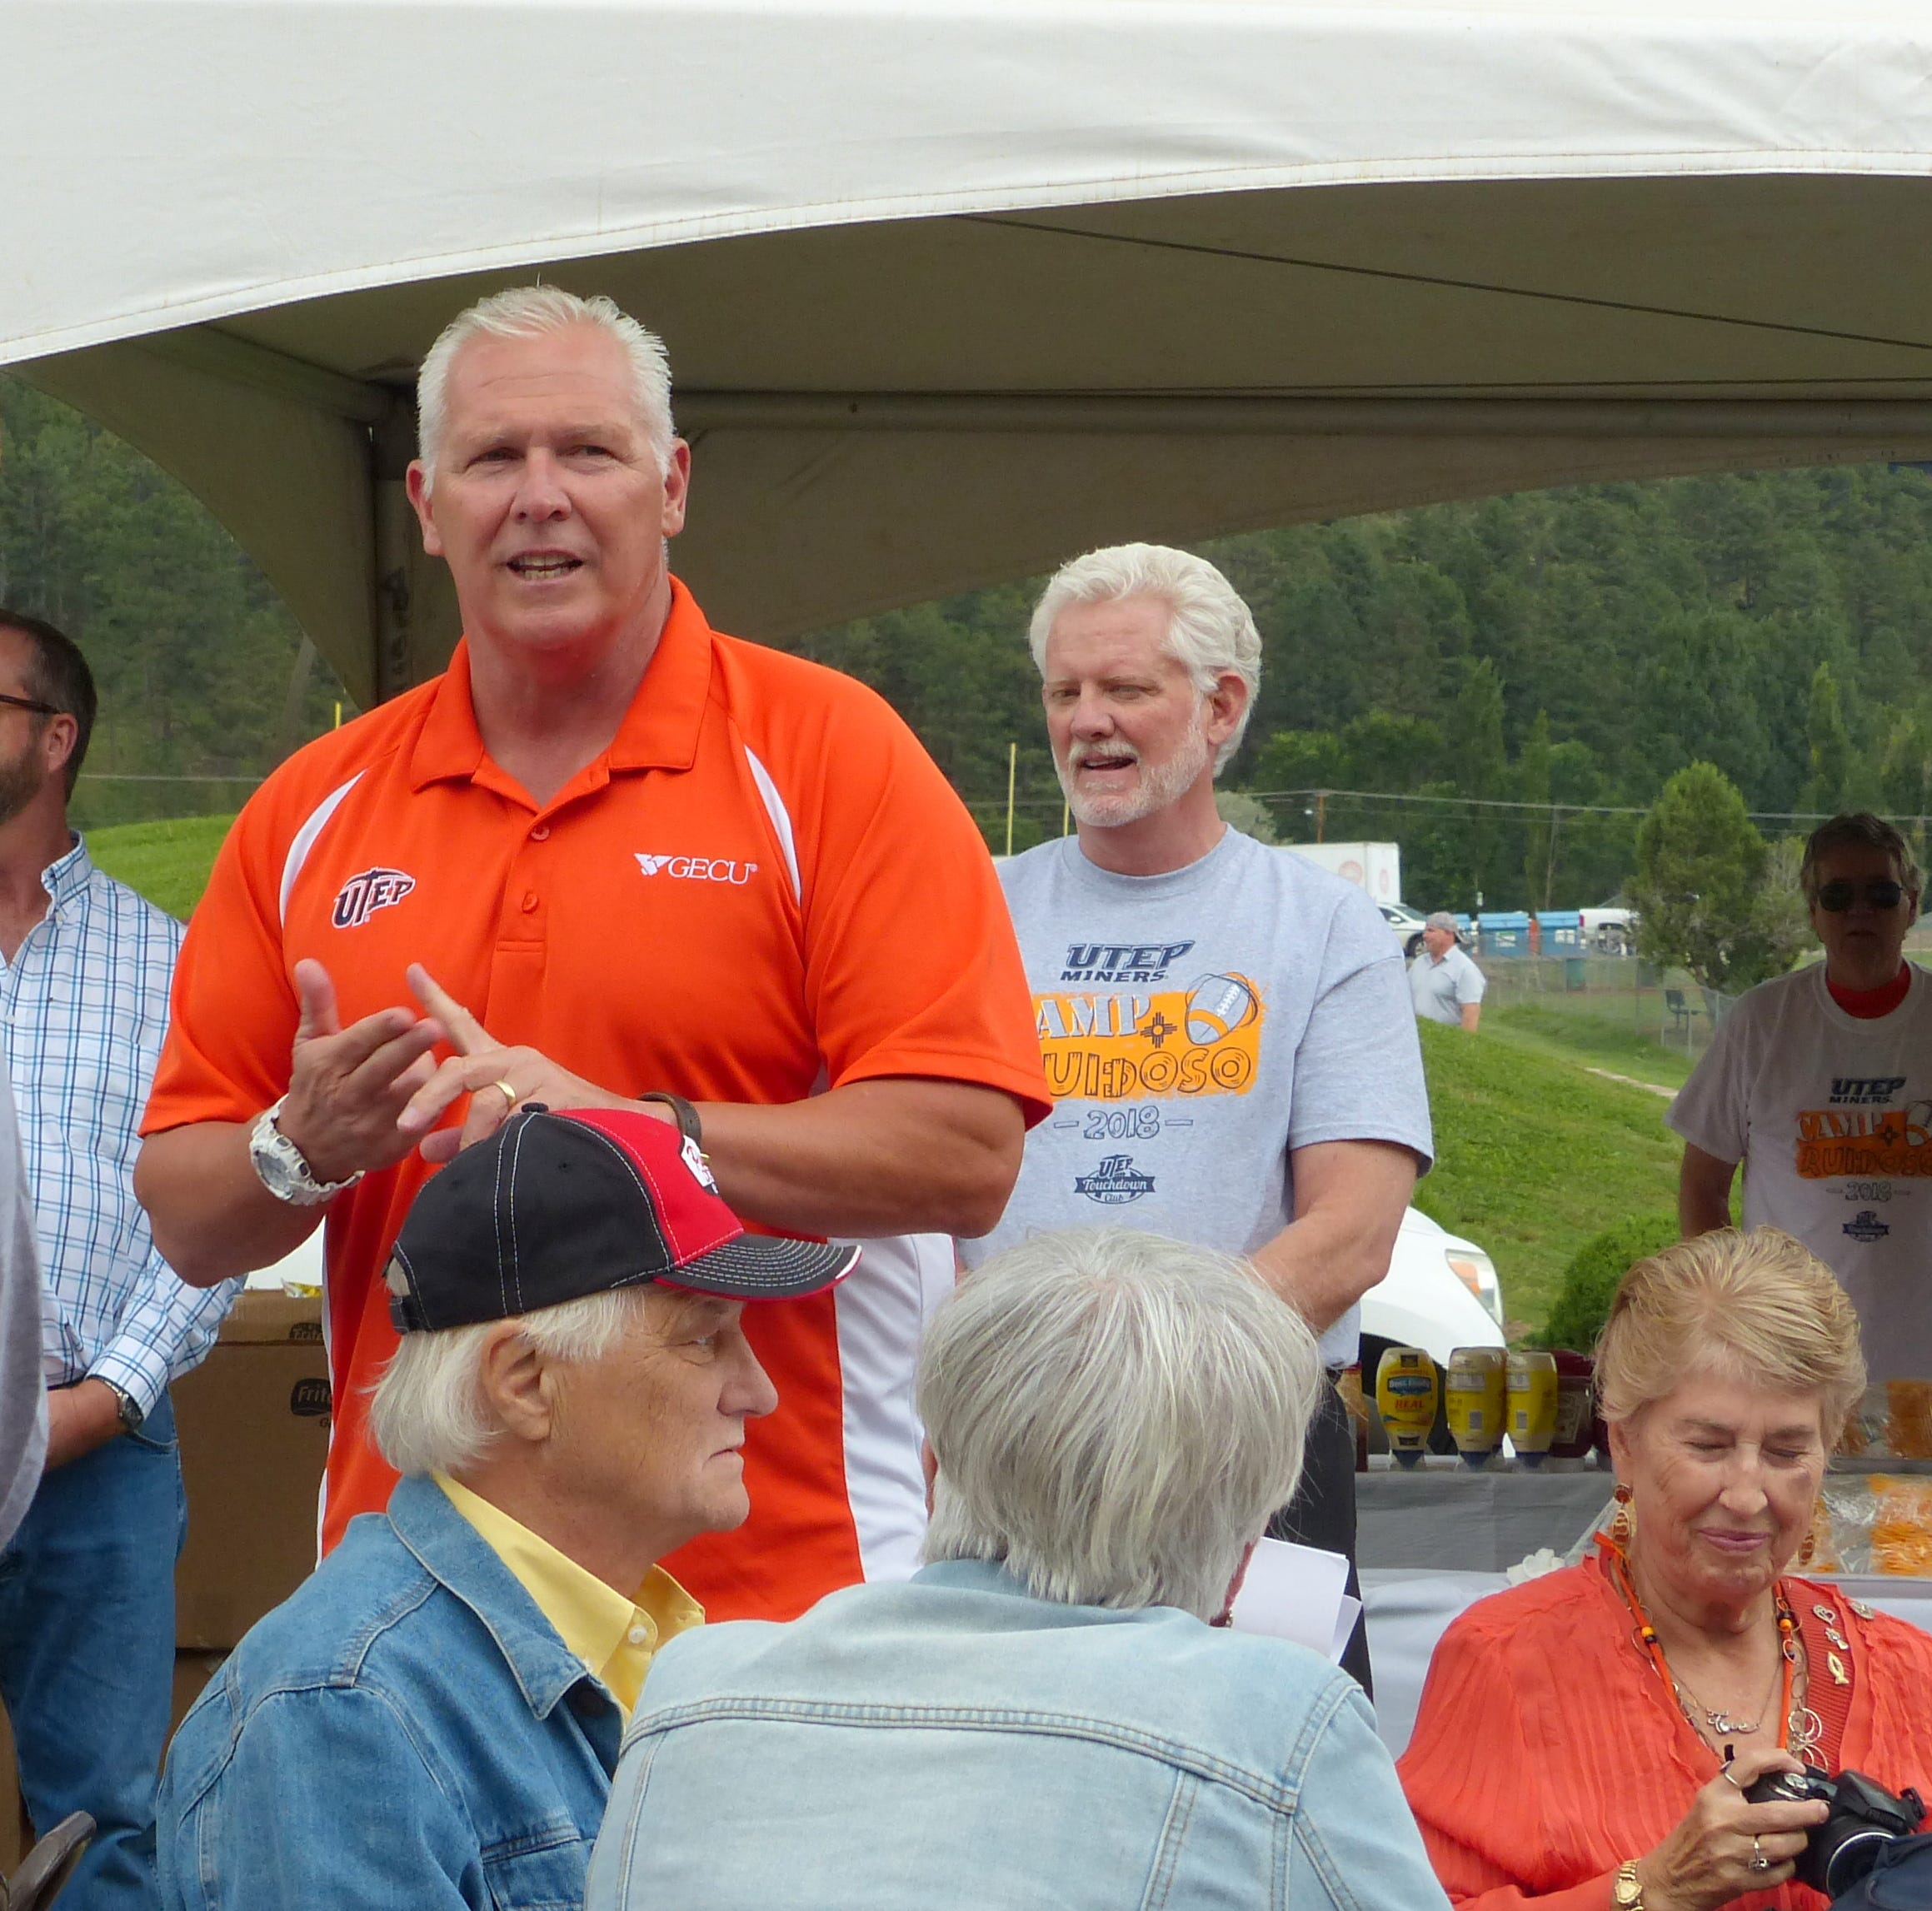 Ruidoso stages community barbecue as send-off to UTEP football team after training camp